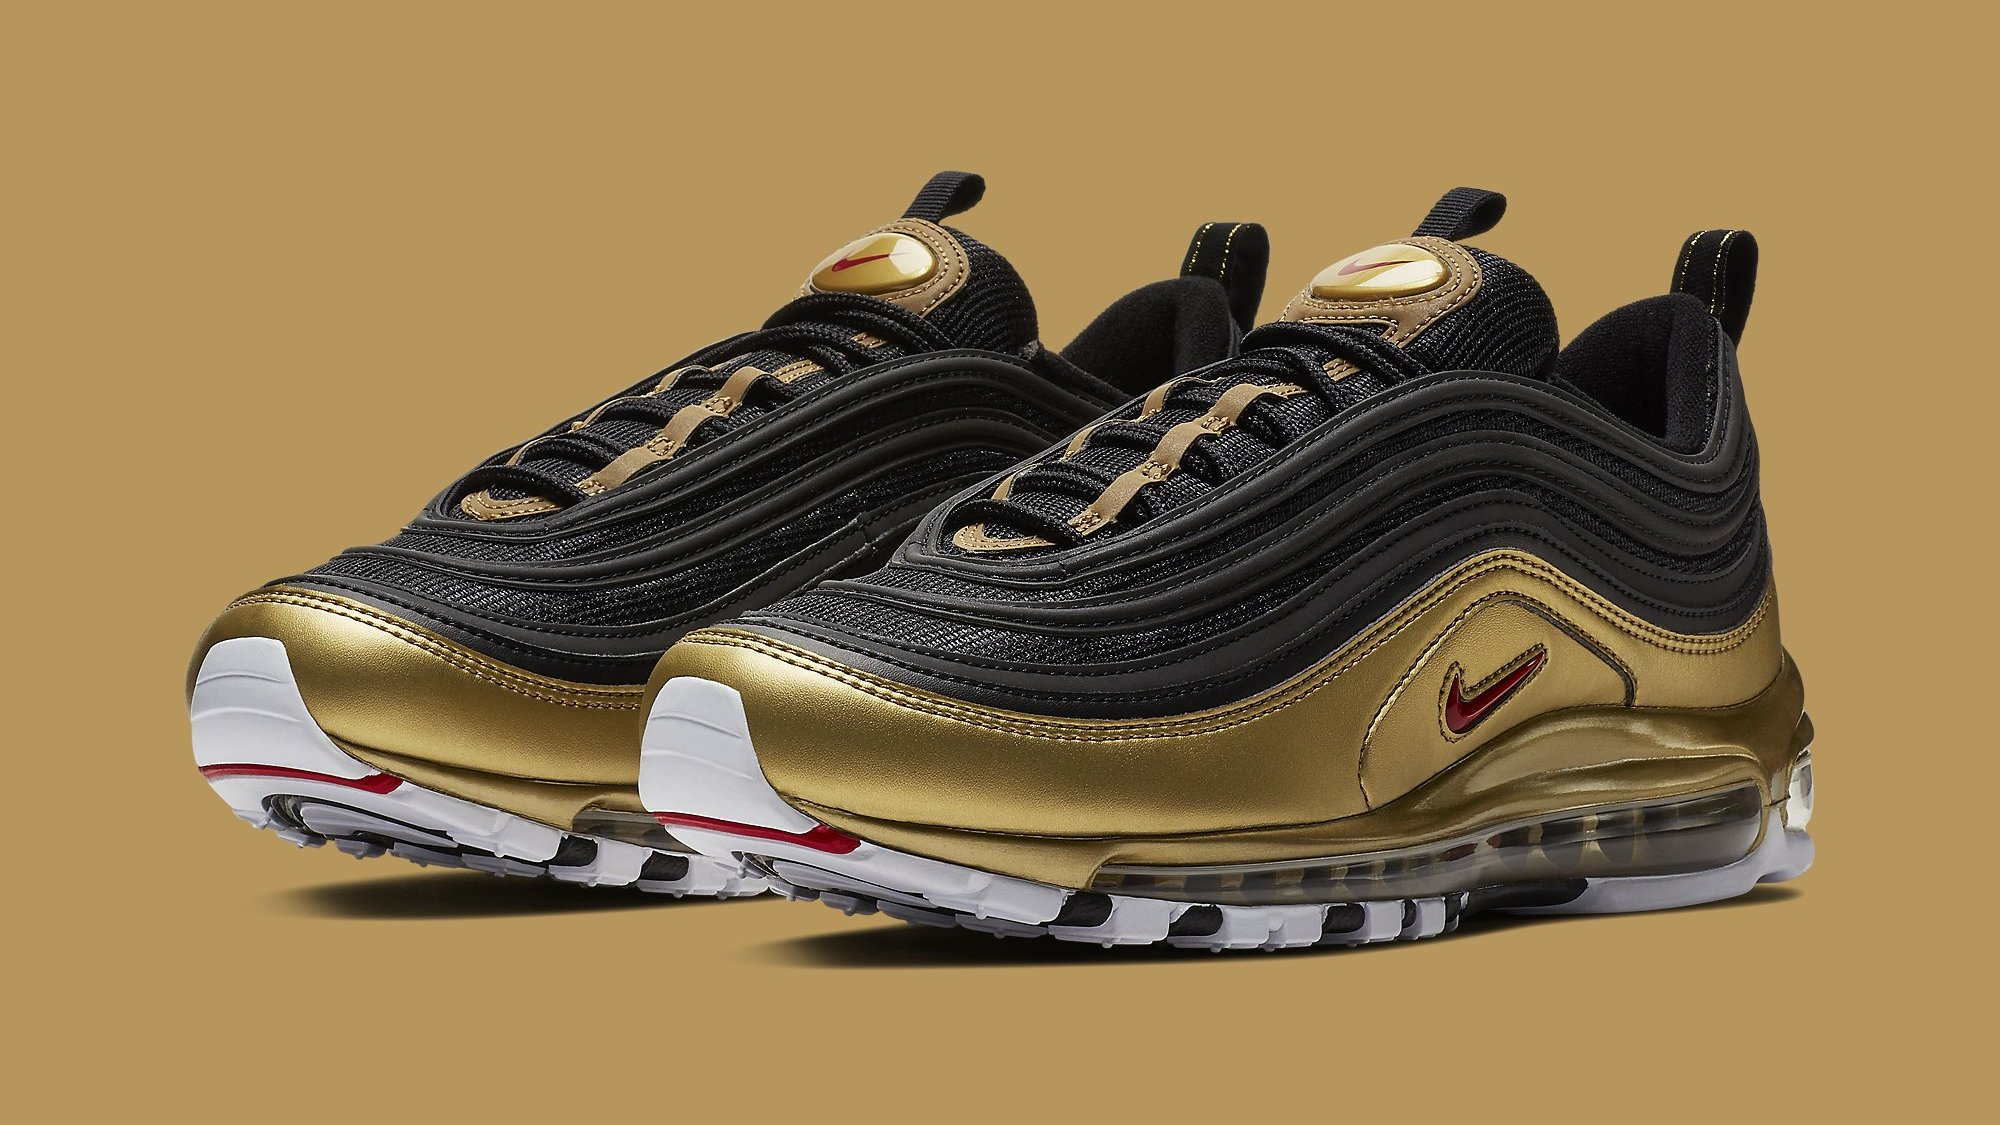 Soltero Oxido leopardo  Nike Air Max 97 'Black/Metallic Gold' AT5458-002 'Black/Metallic Silver'  AT5458-001 Release Date | Sole Collector